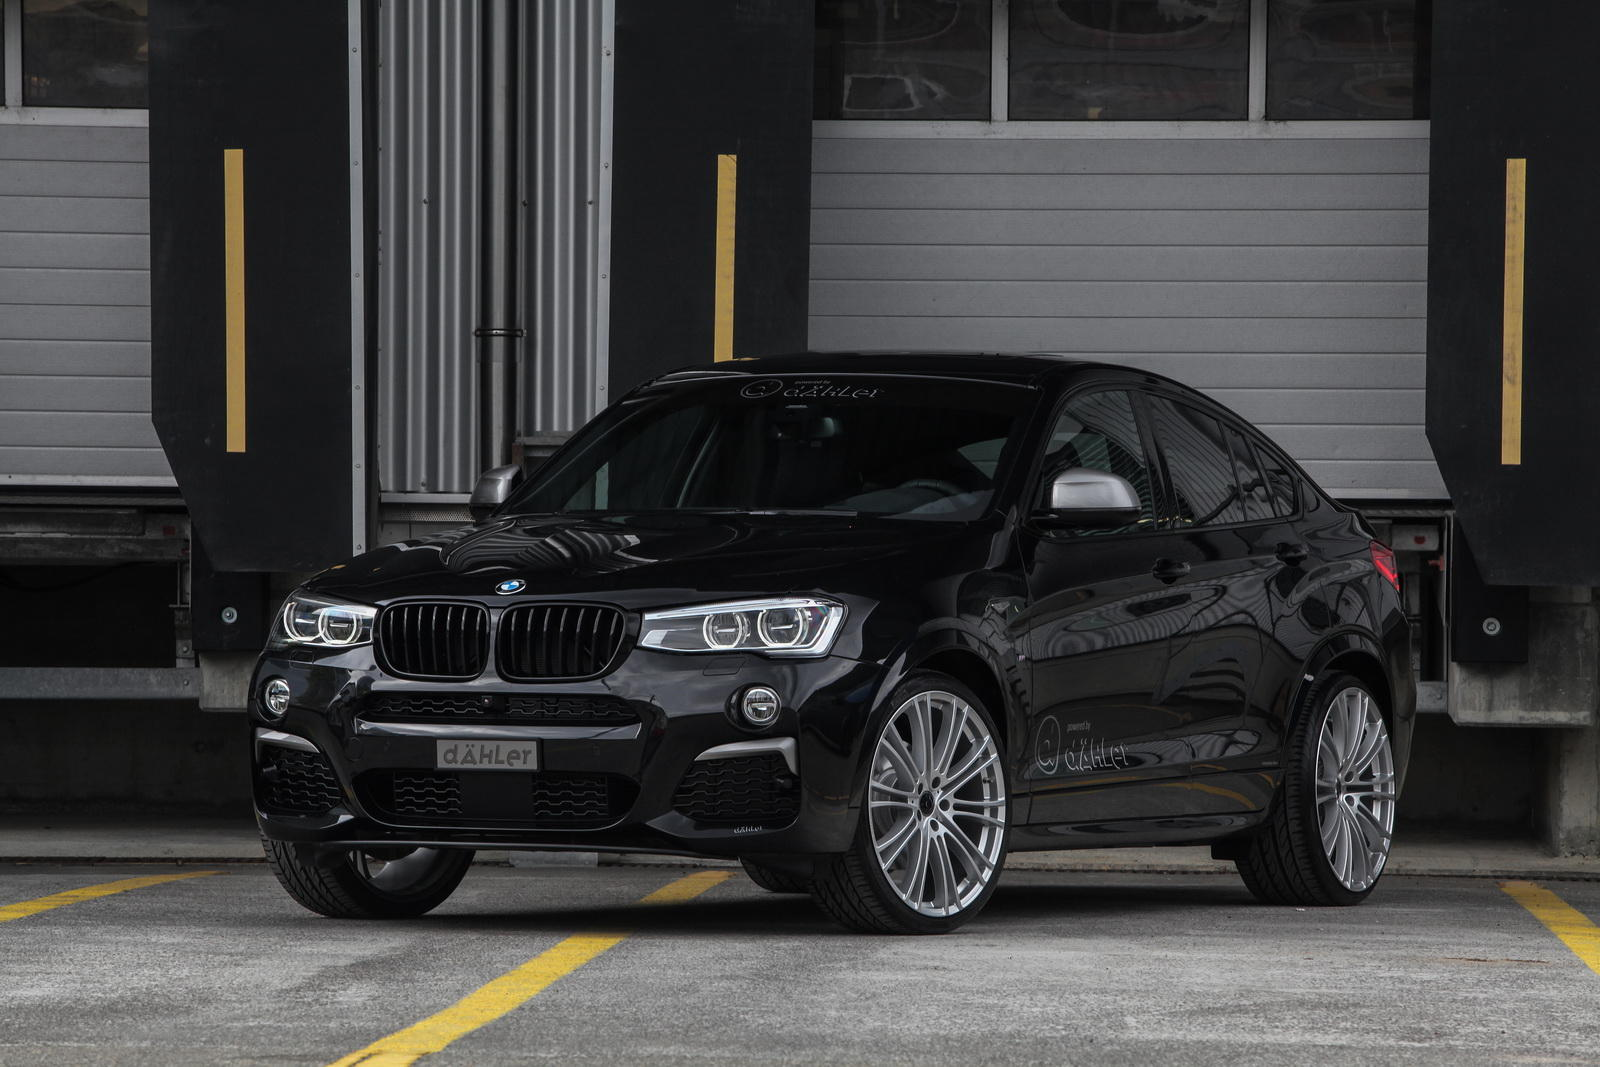 BMW X4 M40i by Dahler - BMW X4 M40i by Dahler